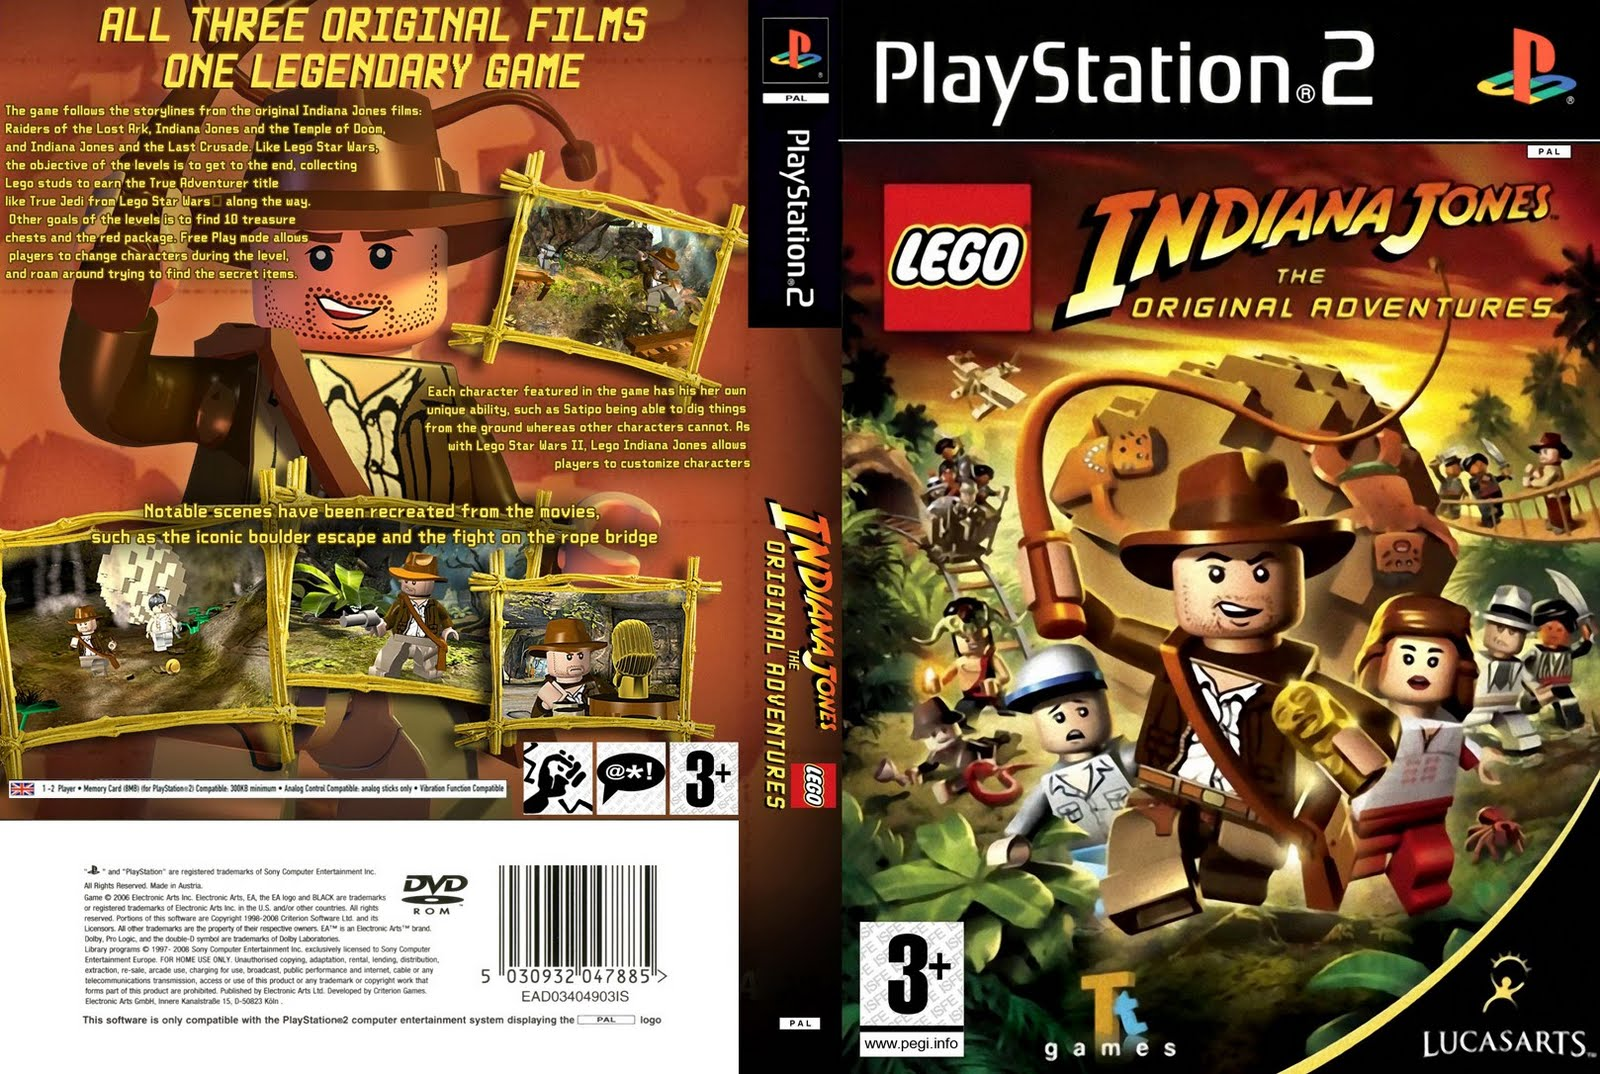 Password Lego Indiana Jones: The Original Adventures